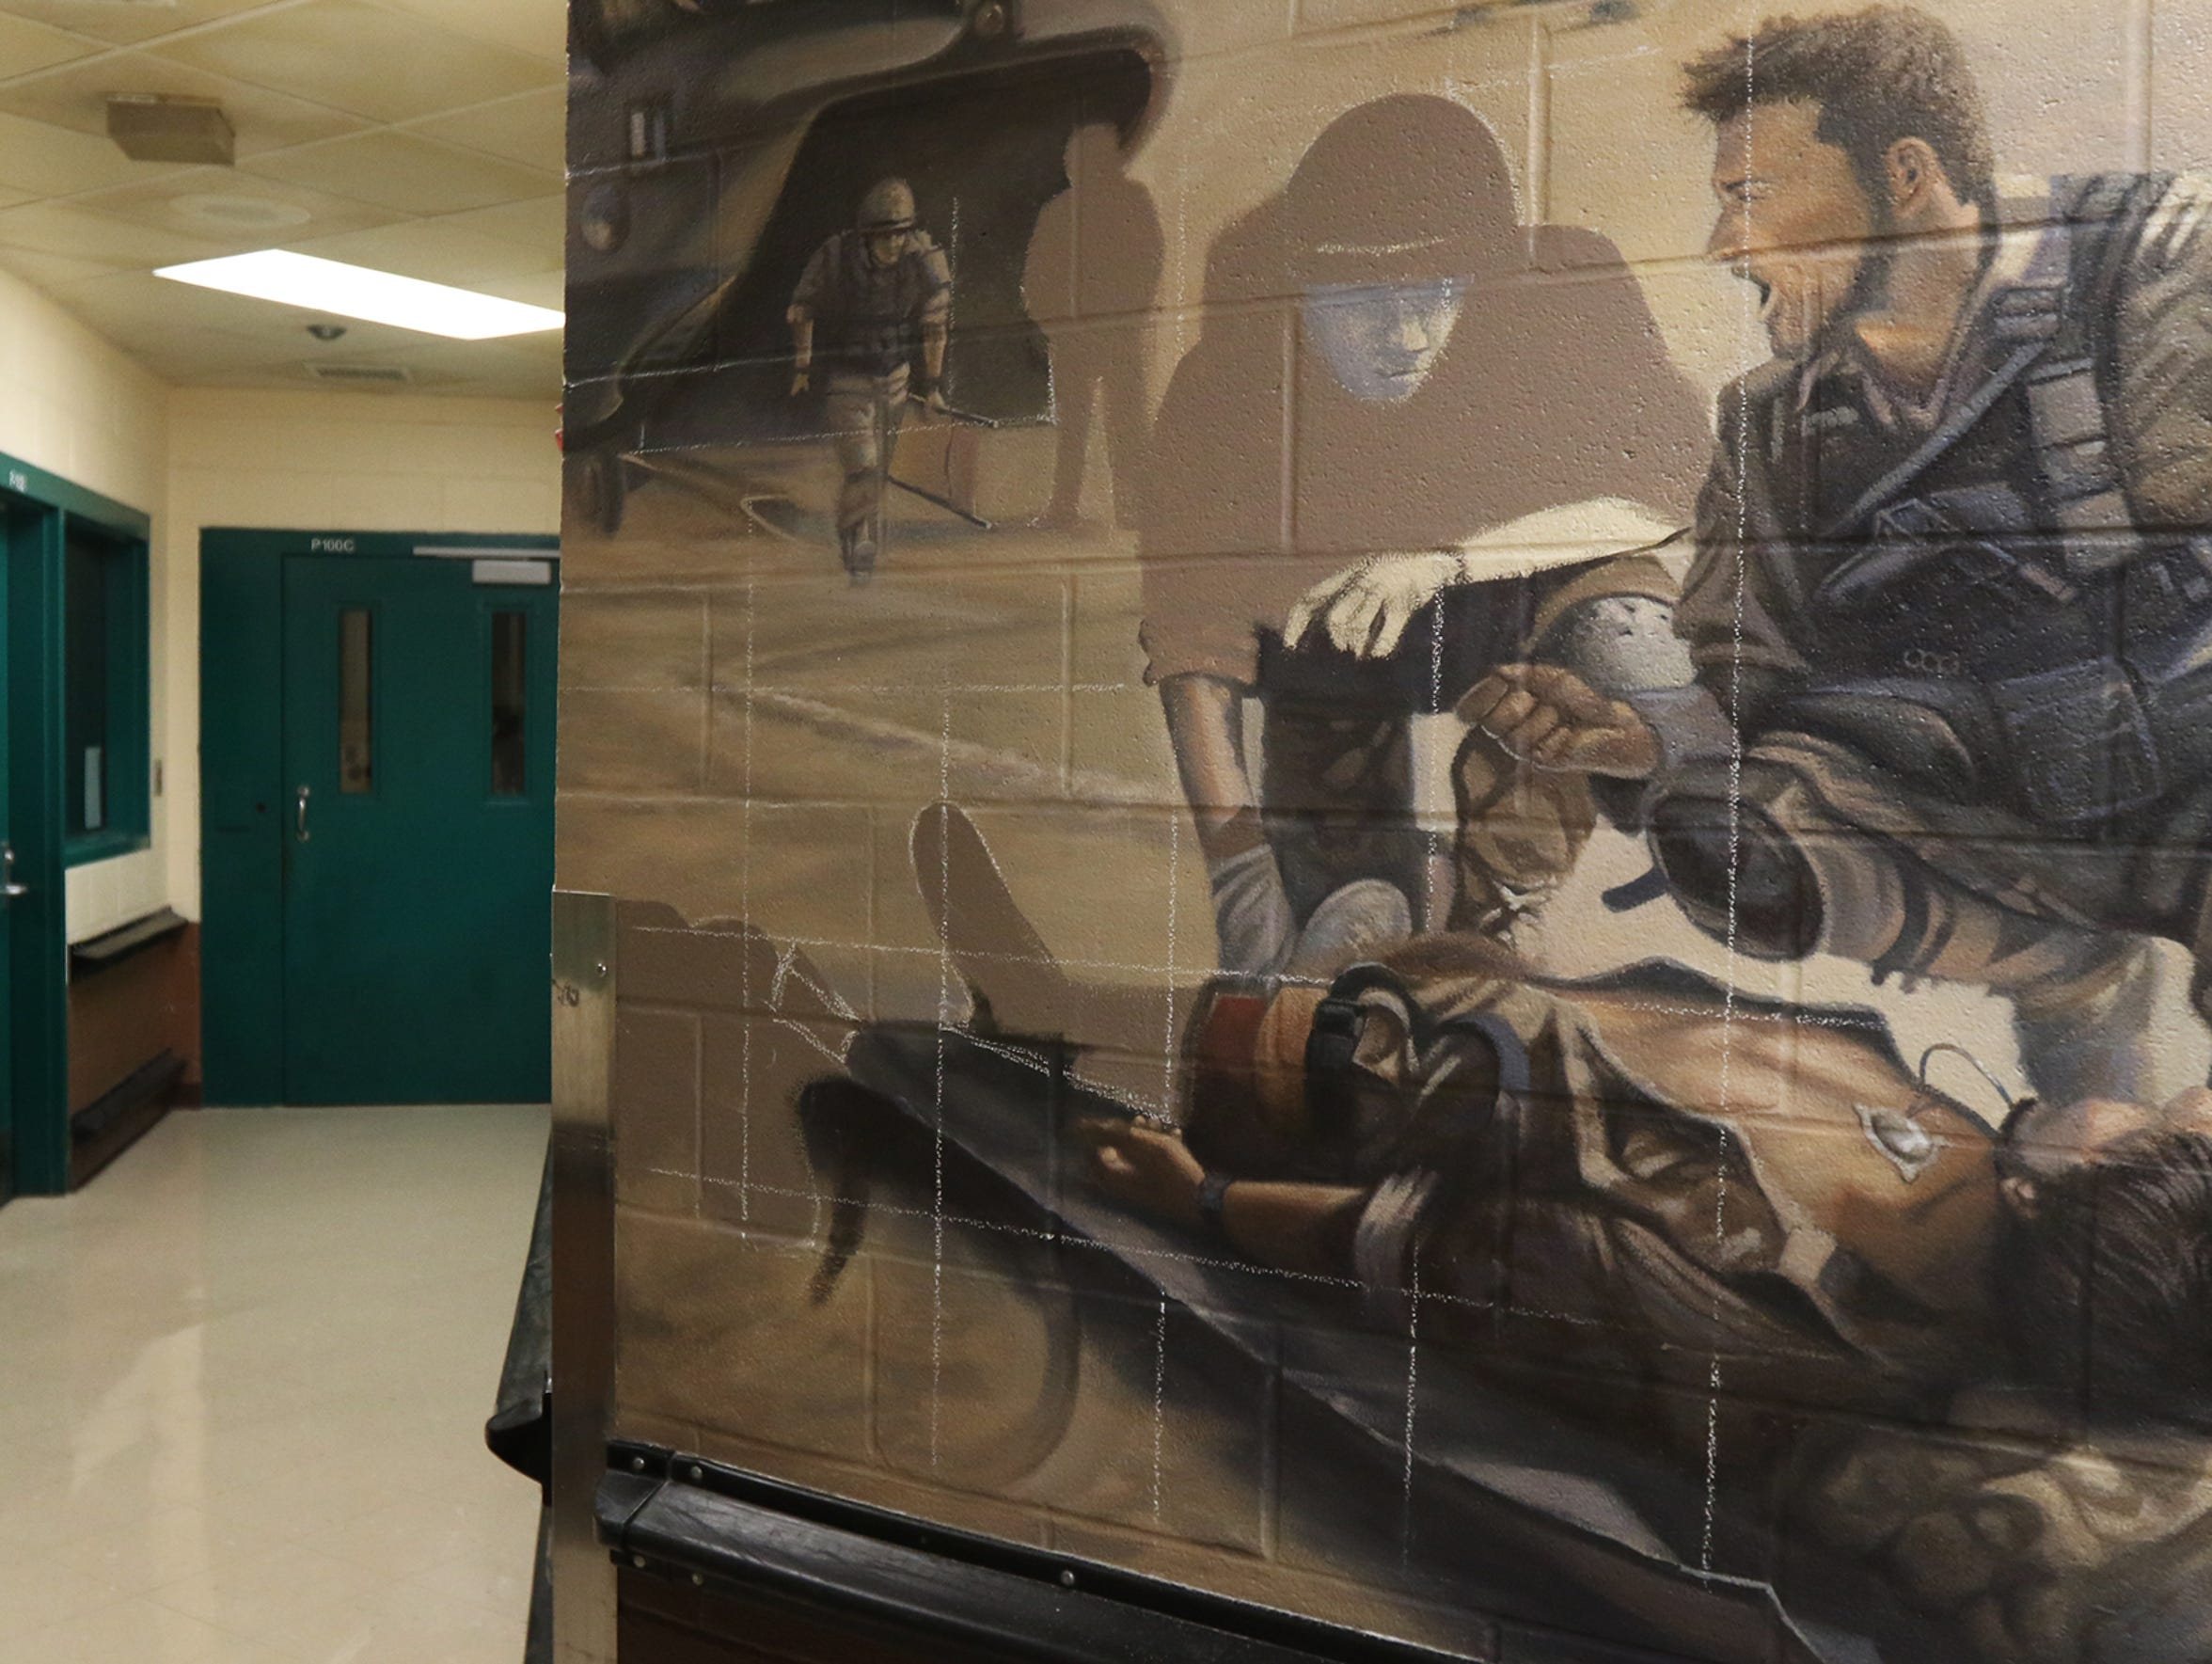 An inmate donated his time and talent to create this mural outside the veterans housing unit of the Monroe County Jail.